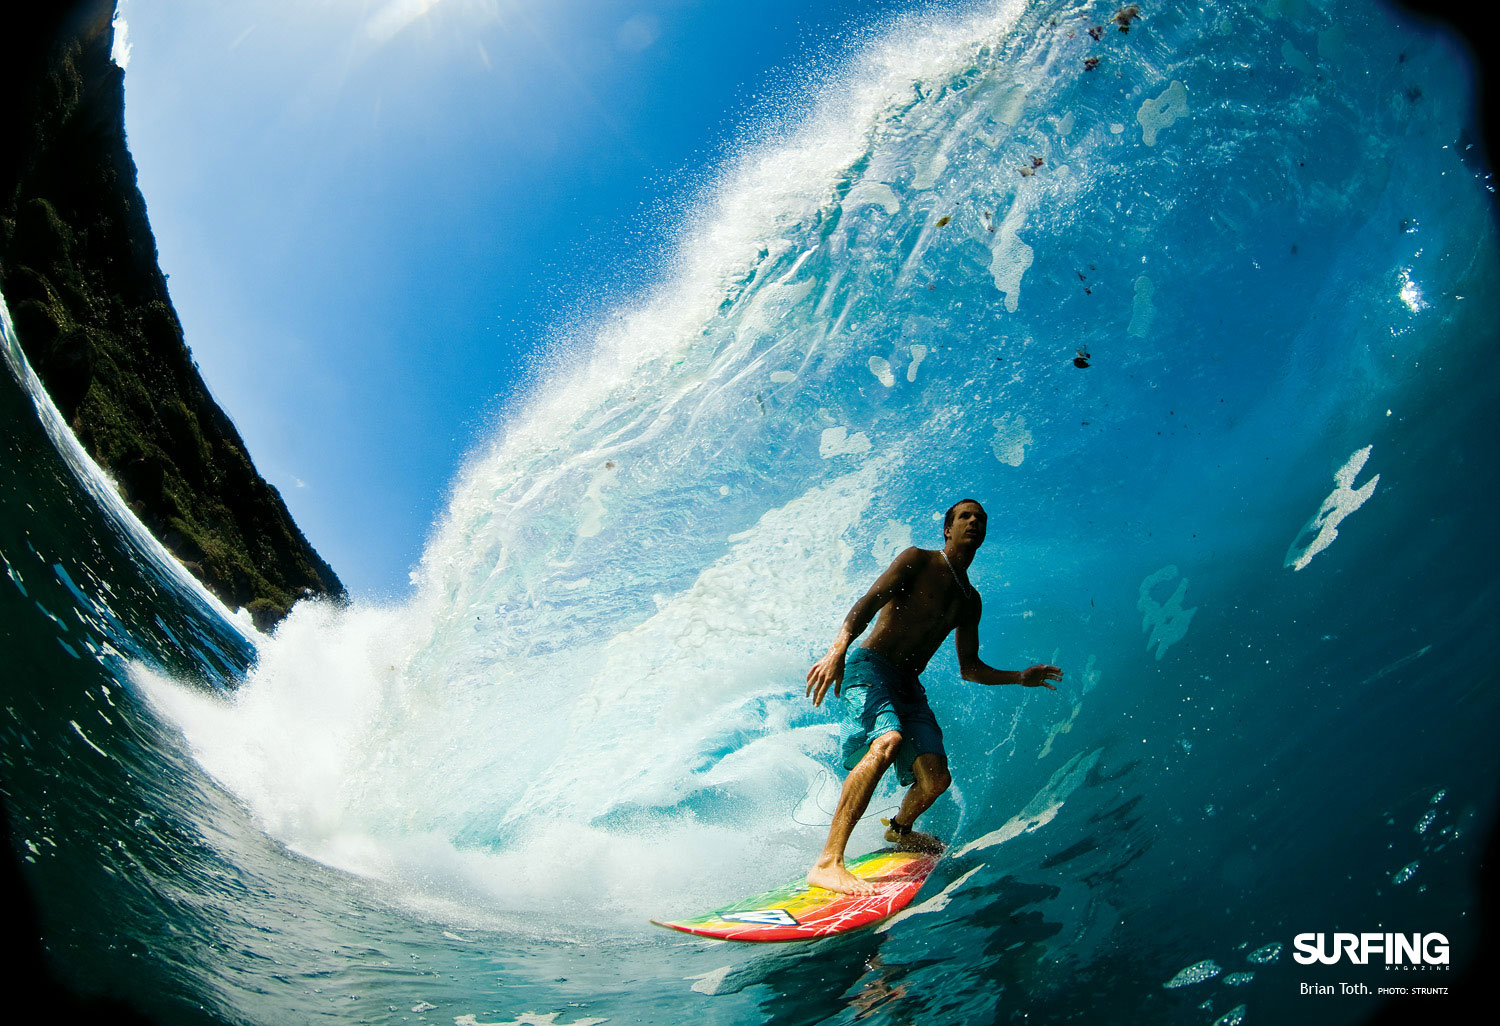 surfing wallpaper full hd - photo #38